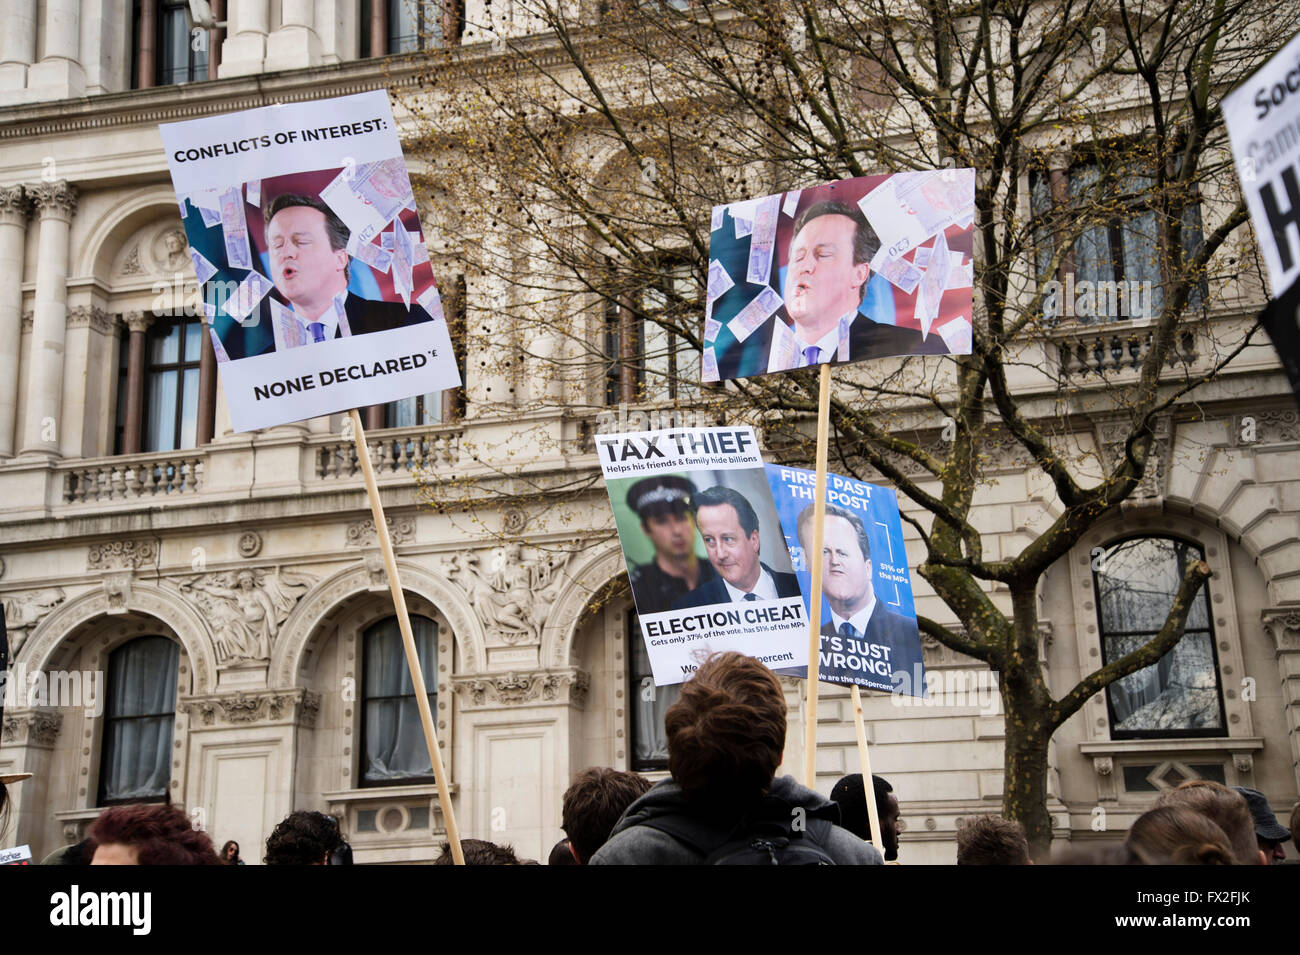 Demonstrators in Whitehall, London, England UK on 9th April 2016 call for Prime Minister David Cameron to resign - Stock Image